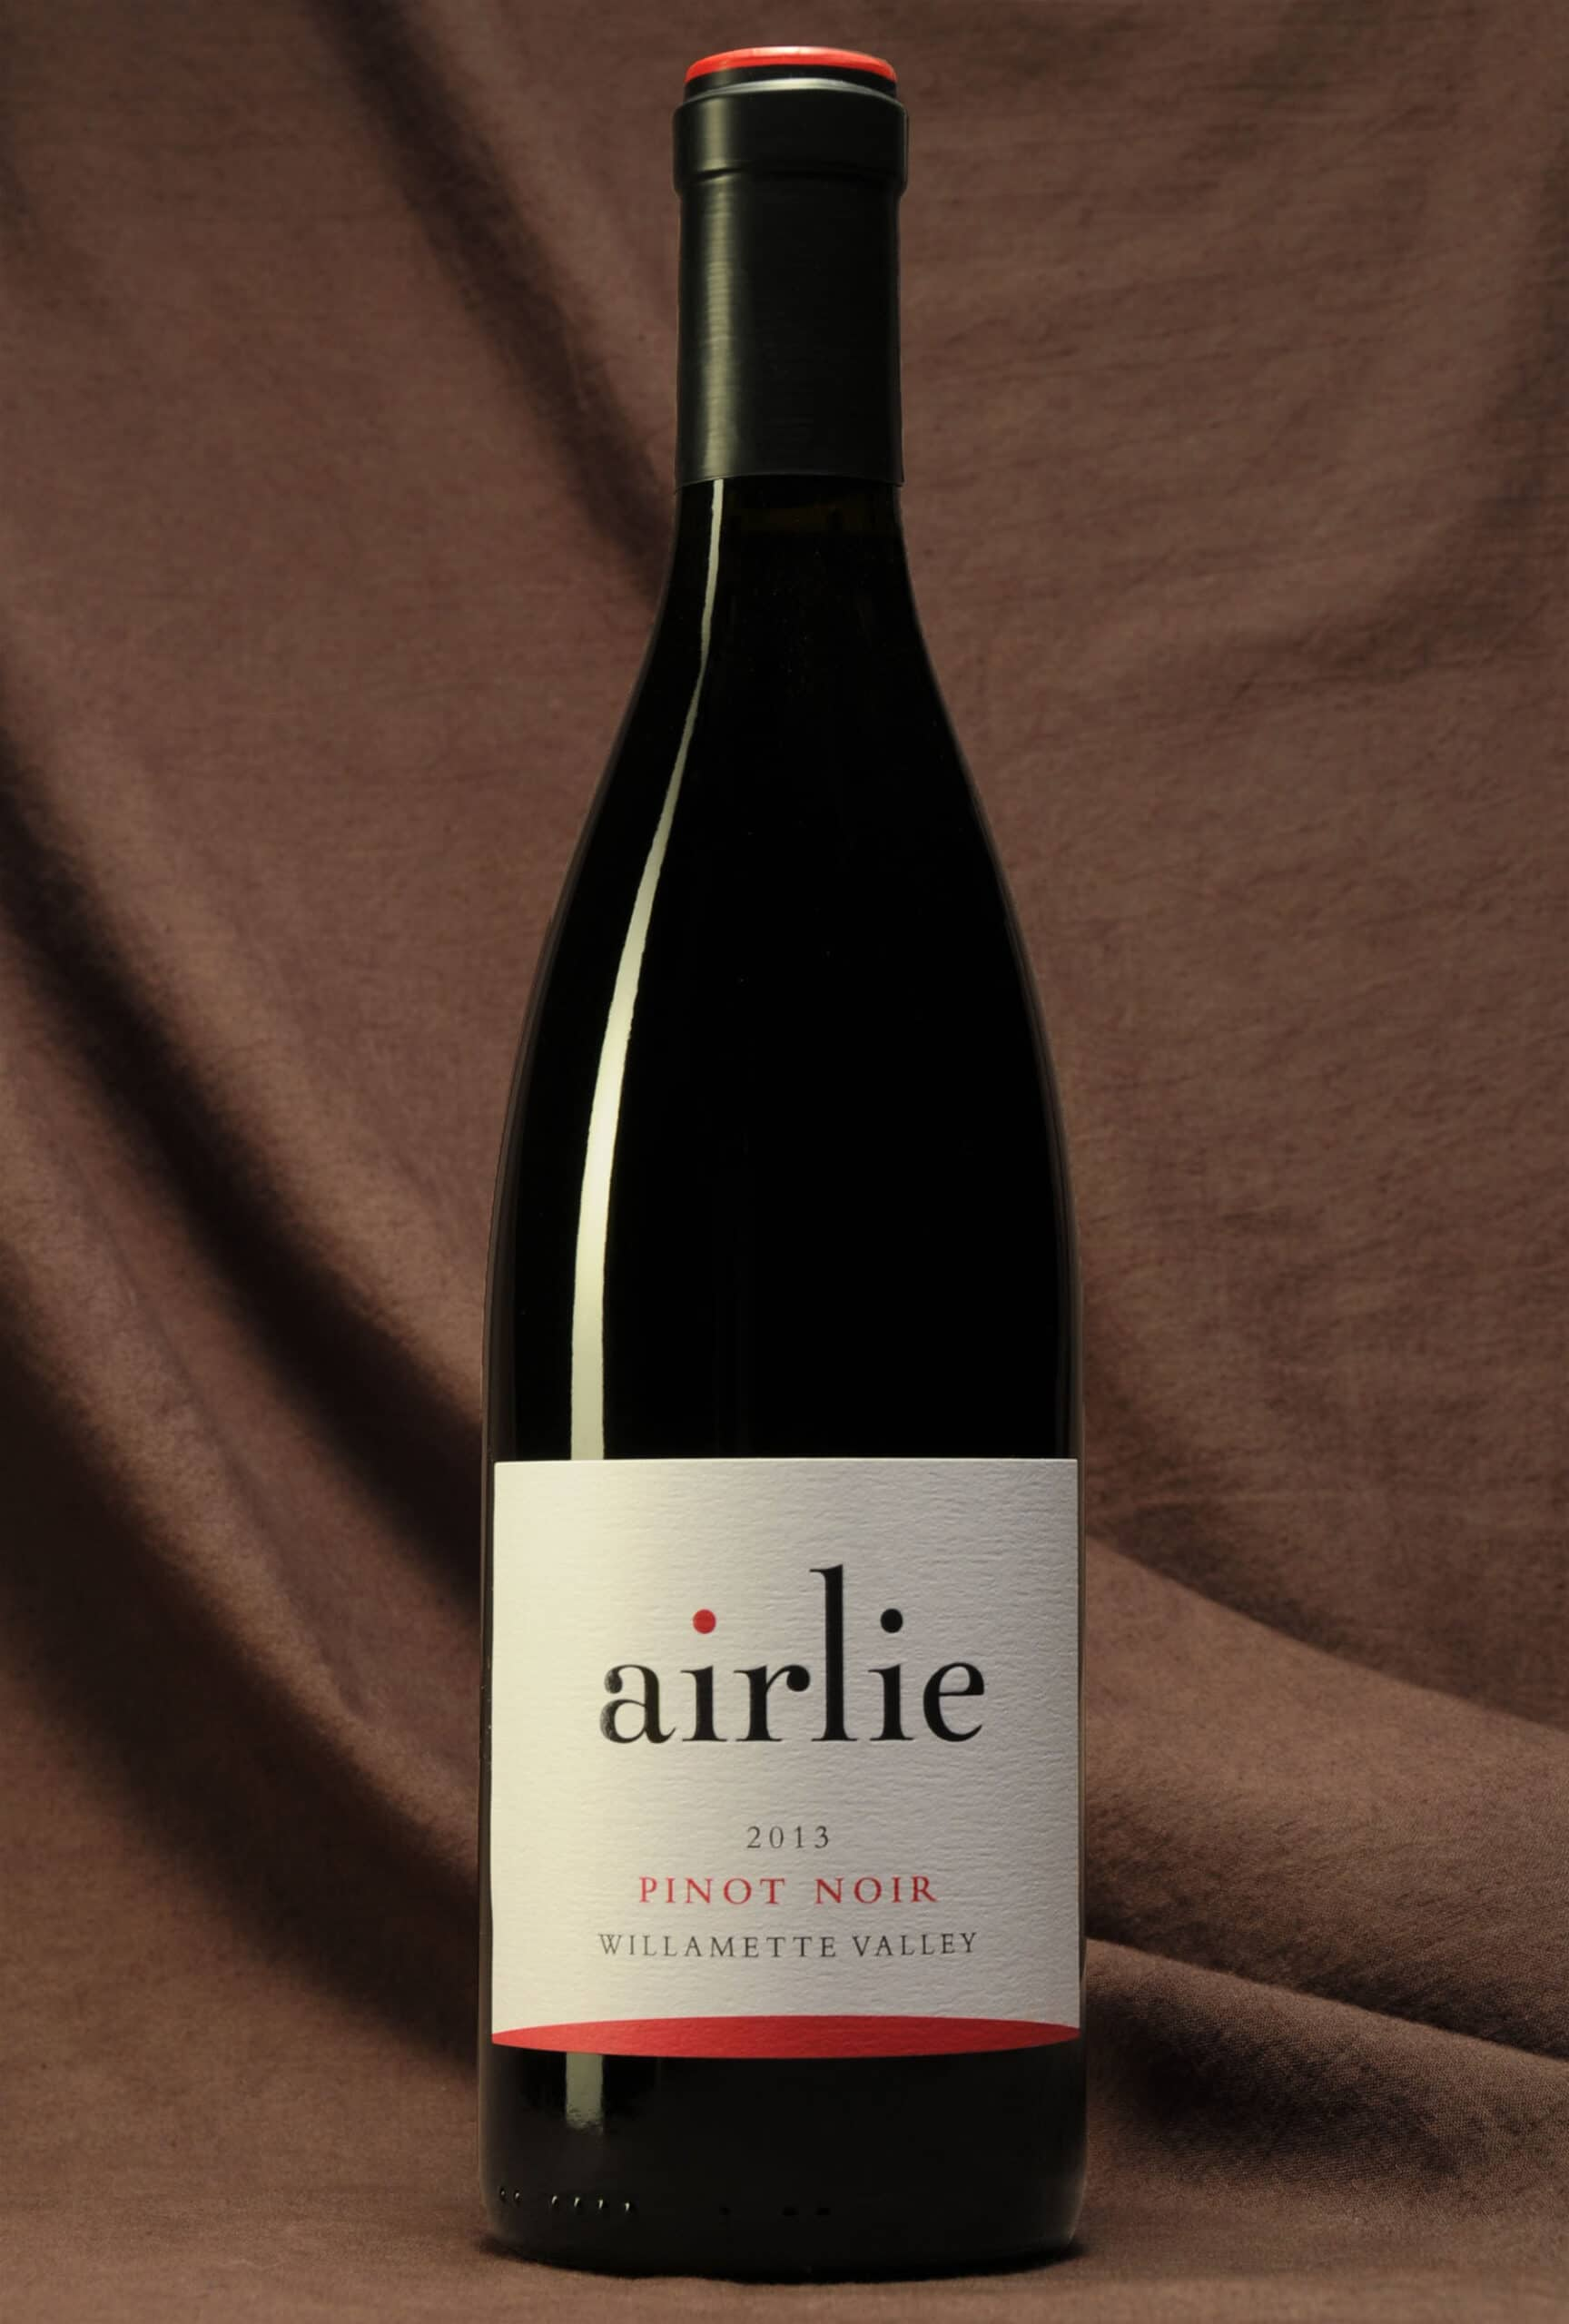 Airlie Winery wine bottle